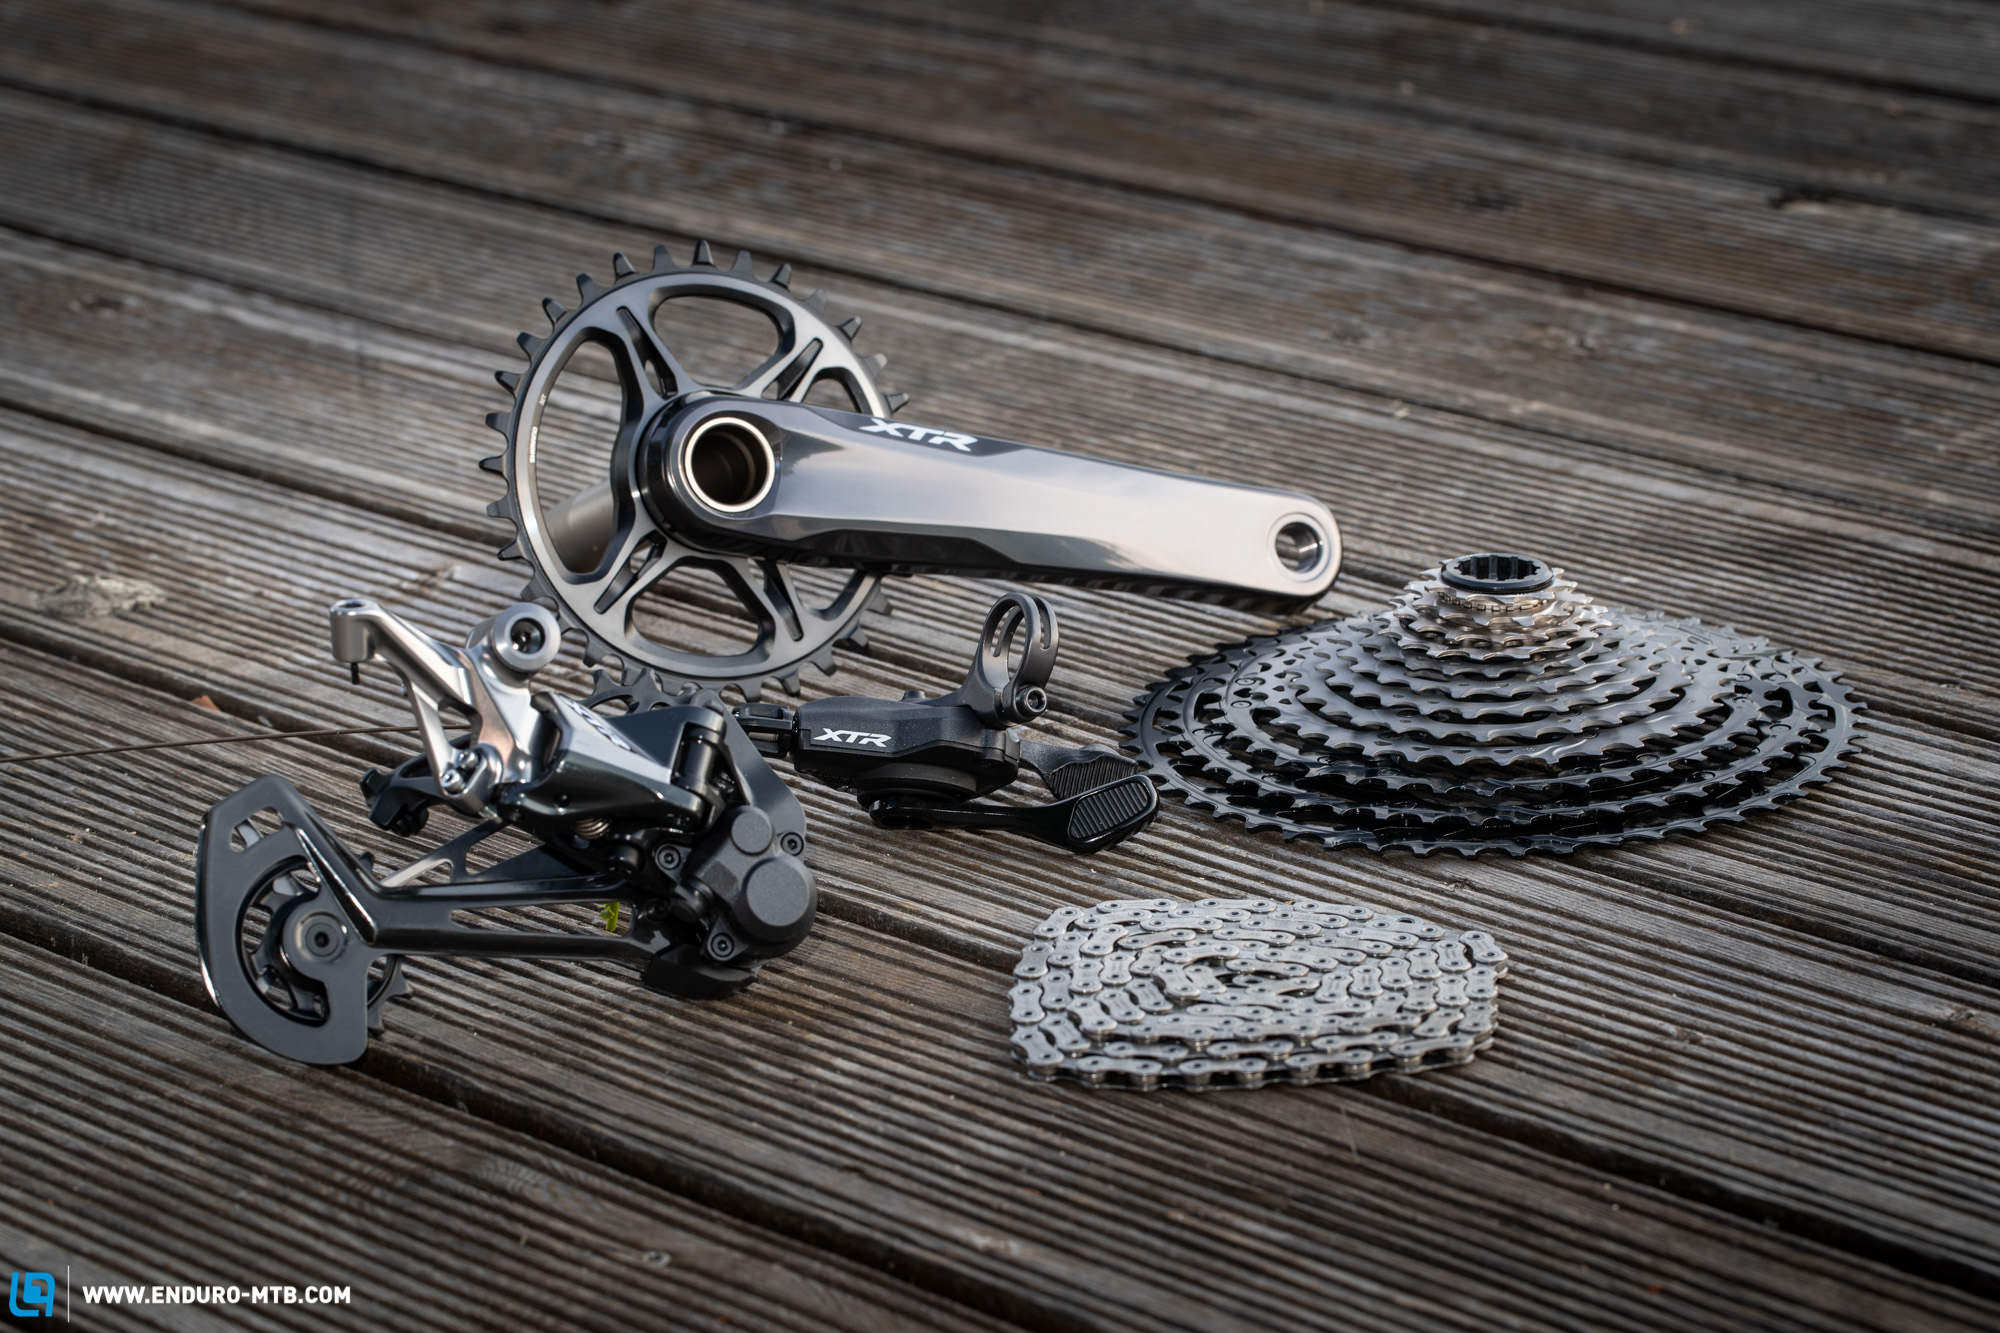 Shimano XTR M9100 launched: 12-speed drivetrain with massive range